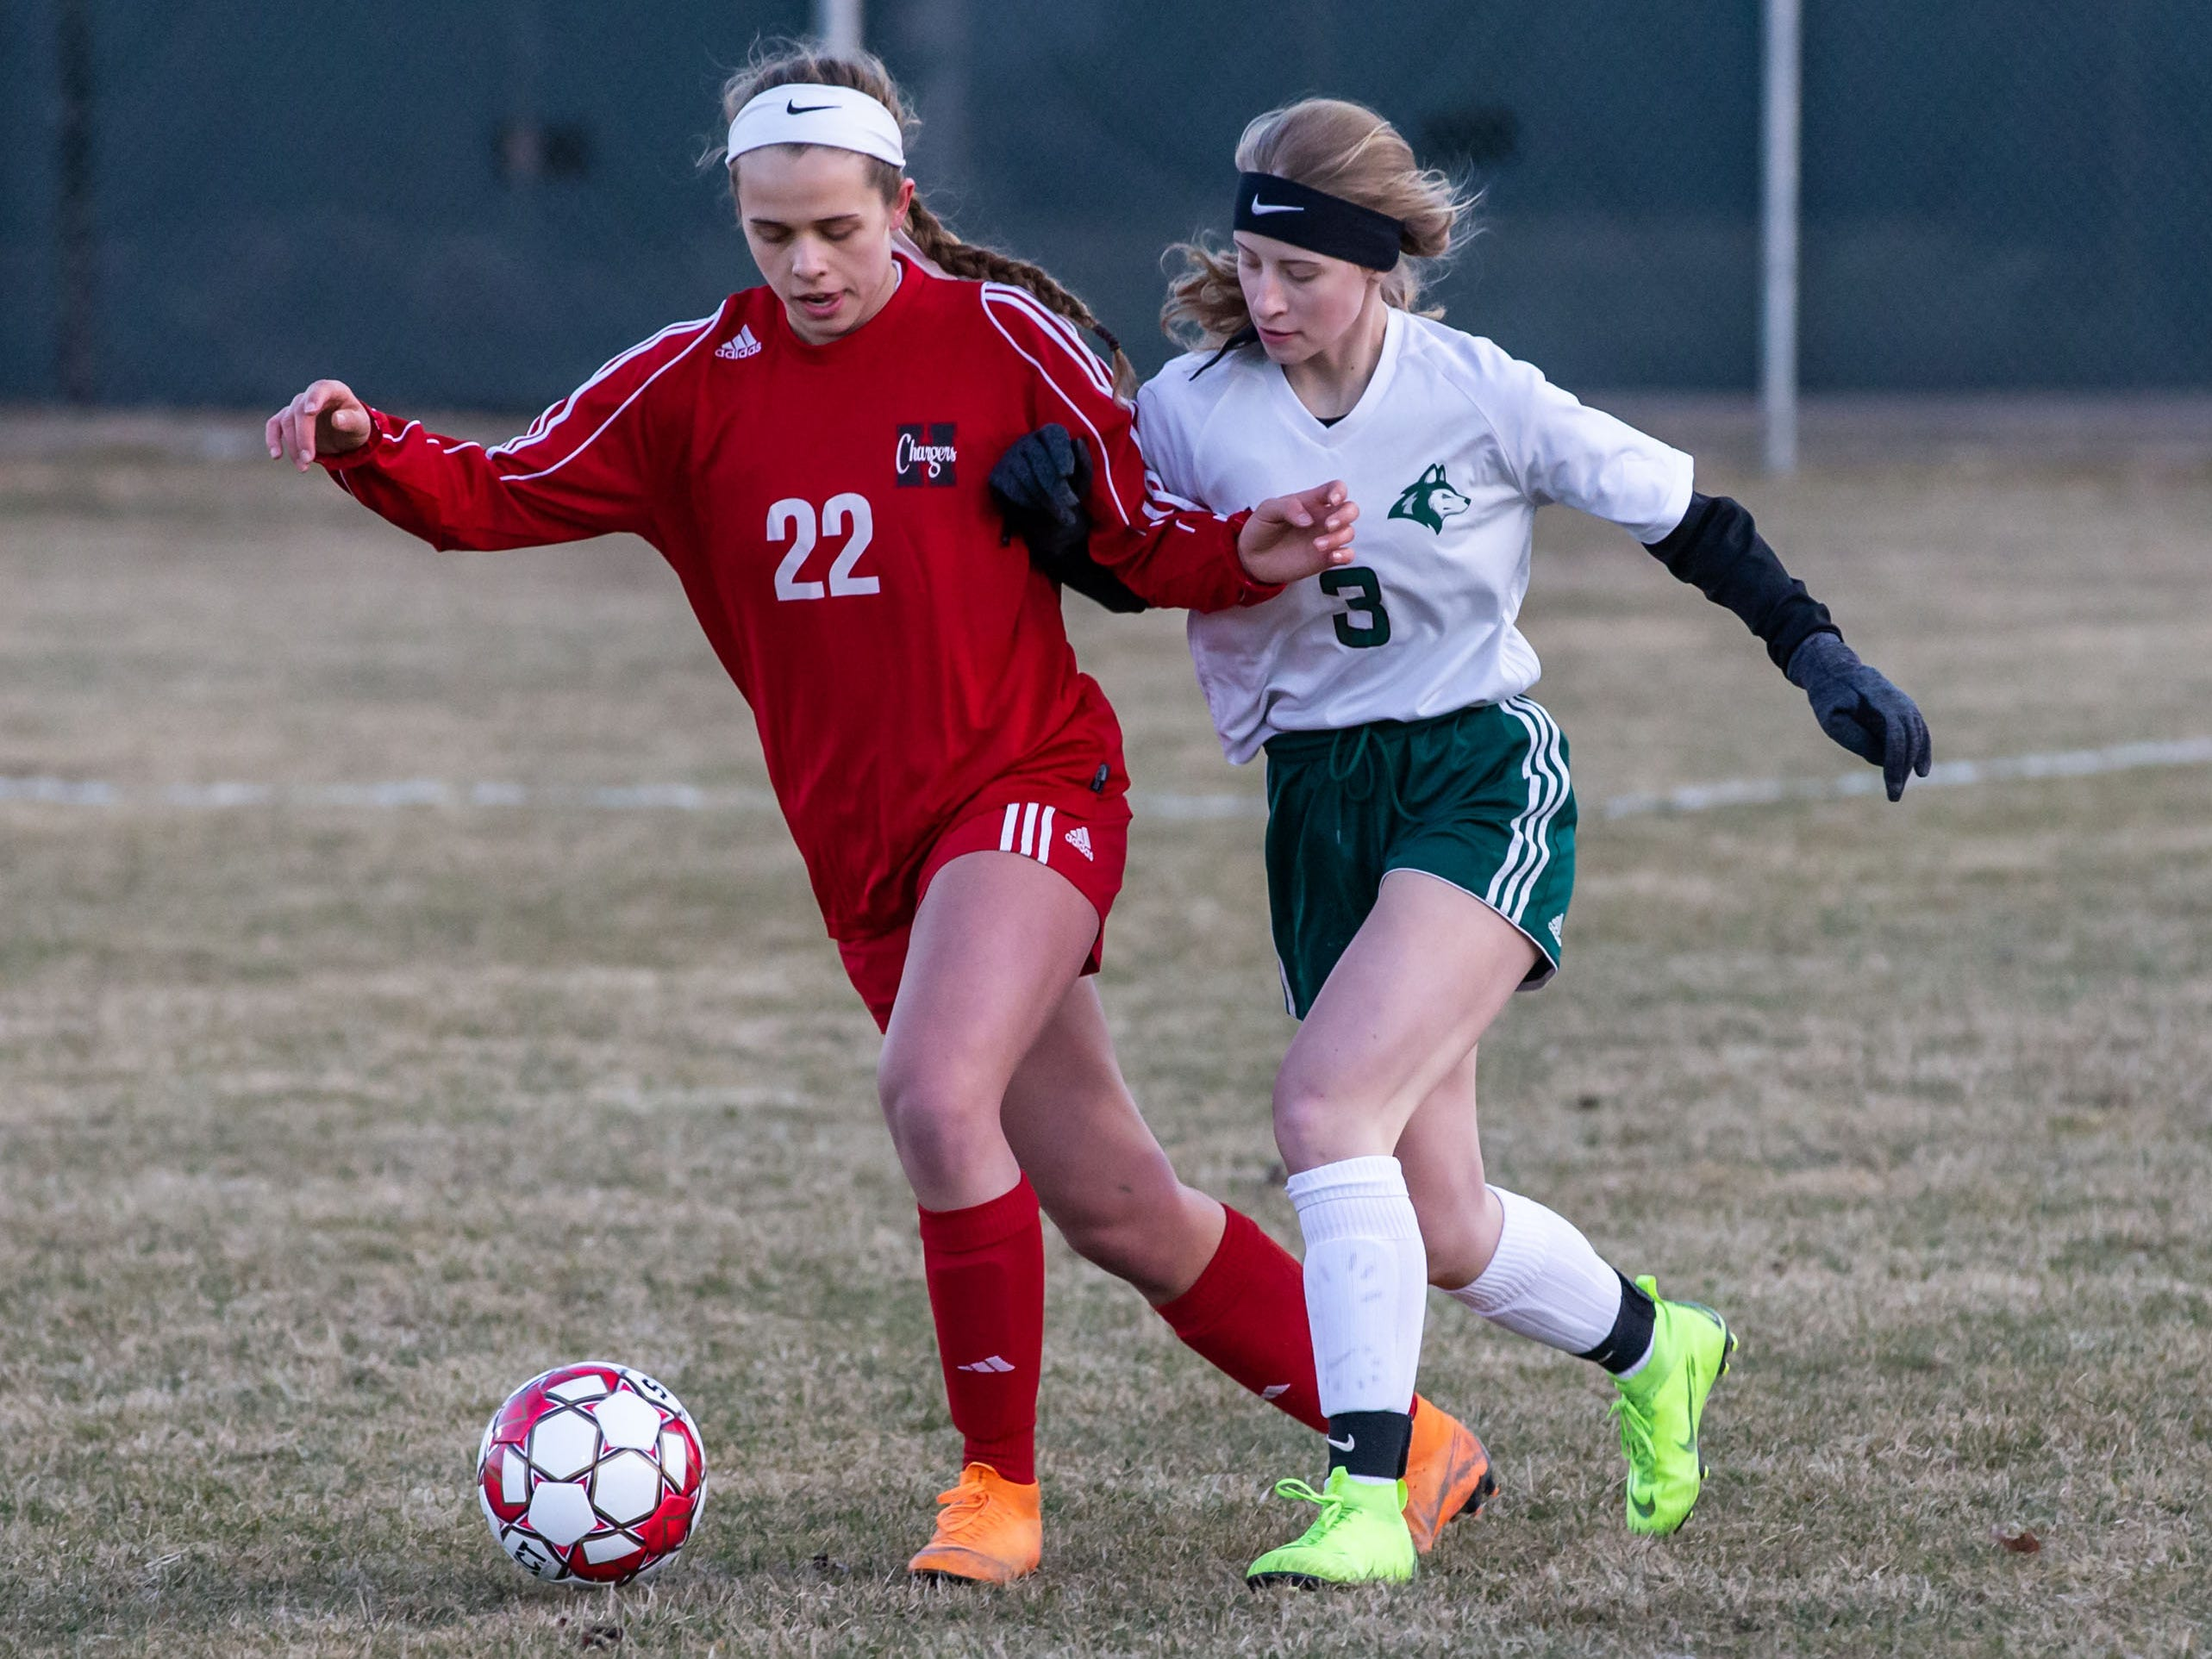 Hamilton's Mackenzie Leibiger (22) battles for possession with West Allis Hale's Madison Guidice (3) during the game at Hamilton on Tuesday, April 2, 2019.